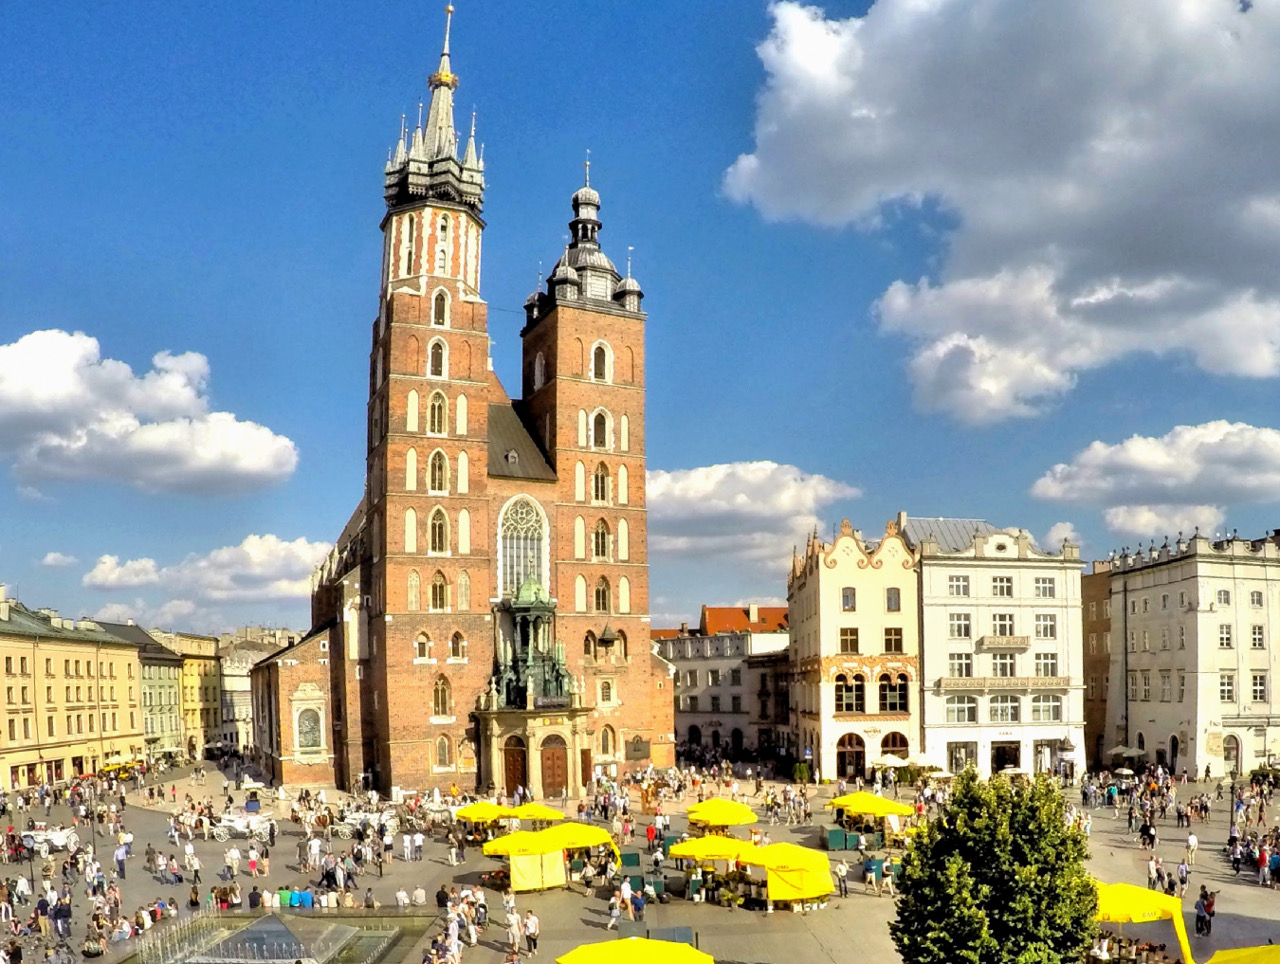 Krakow Rynek, the splendid main square, is one of the places to visit in Krakow. Use this insider's Krakow guide to discover the top Krakow tourist attractions and to plan your Krakow itinerary. Useful travel tips for Krakow are included as well. #krakow #krakowguide #krakowtravelguide #krakowcityguide #krakowtips #krakowpoland #poland #krakowattractions